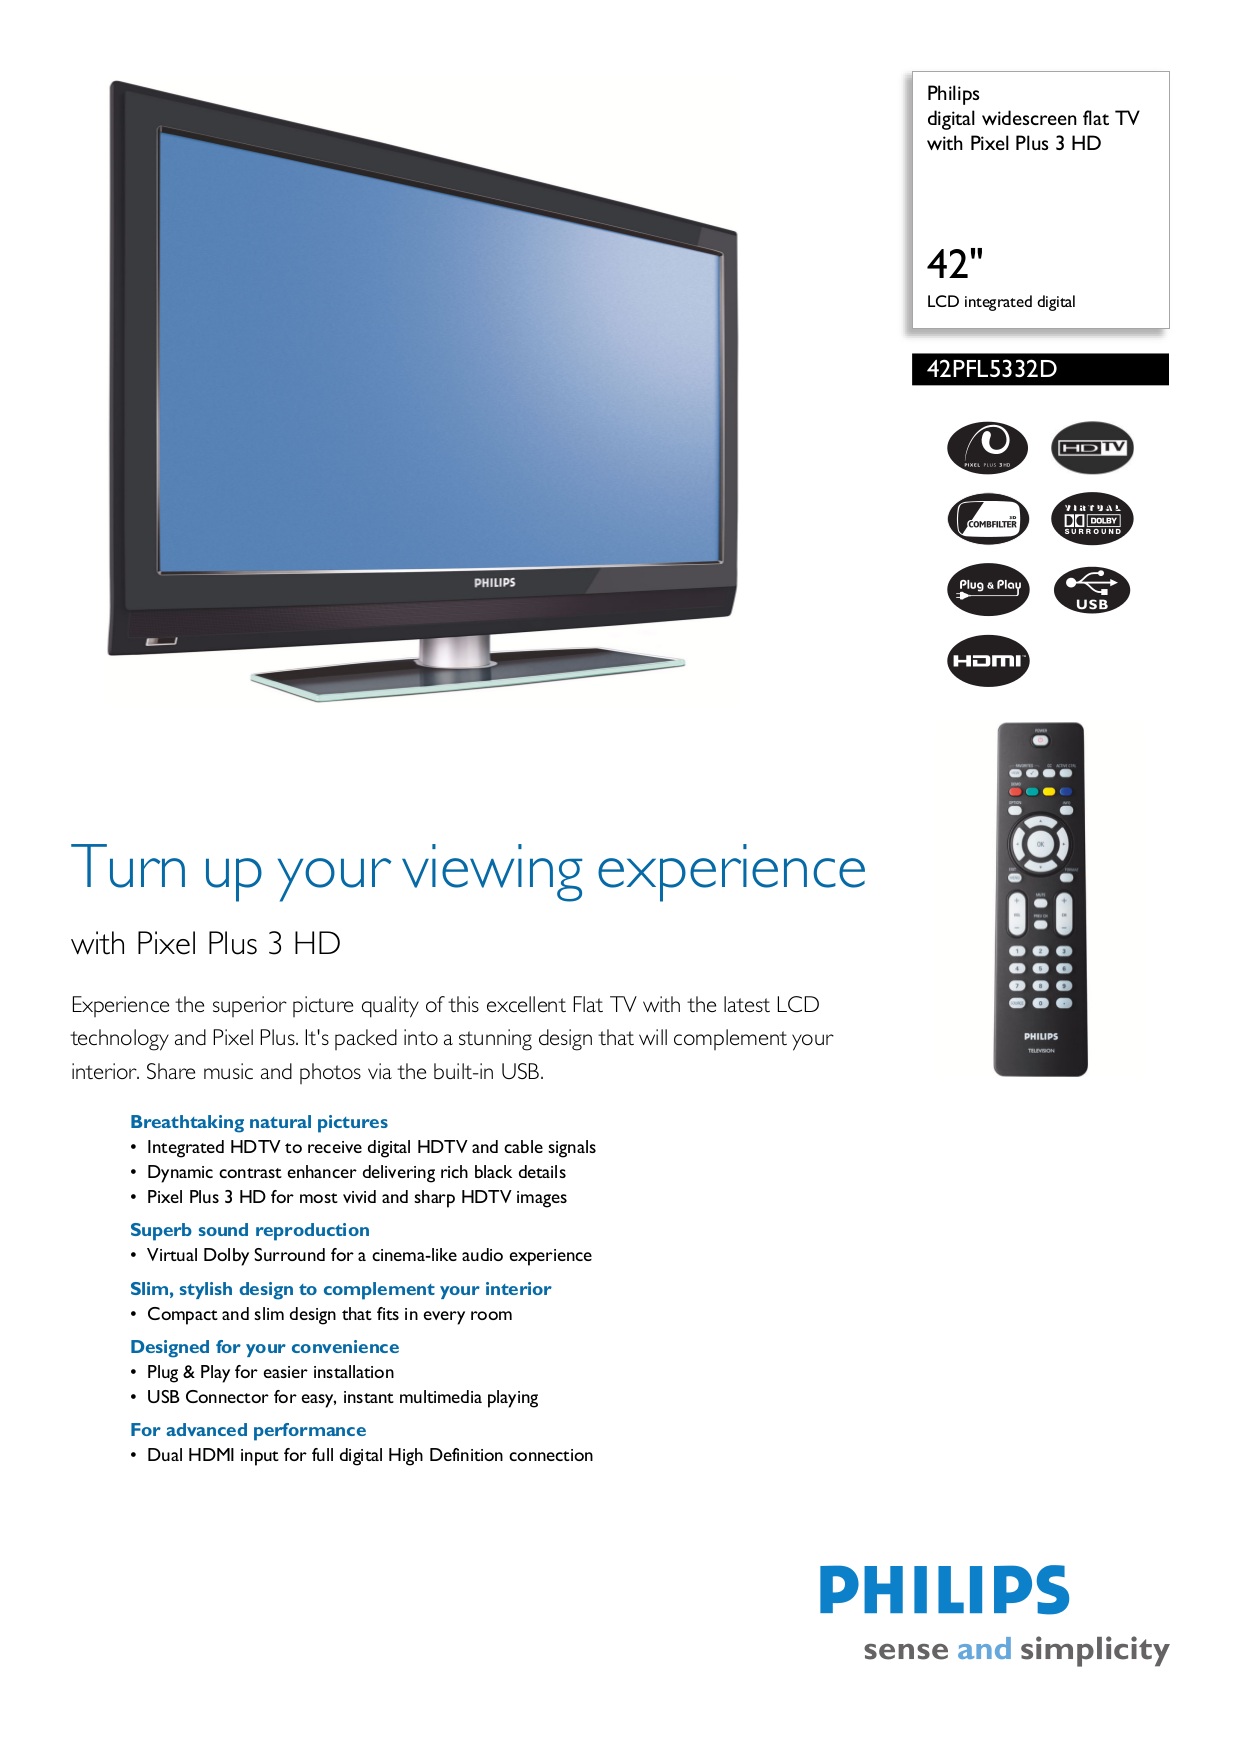 vivid tv manual user guide manual that easy to read u2022 rh sibere co philips plasma tv service manual philips tv owners manuals online